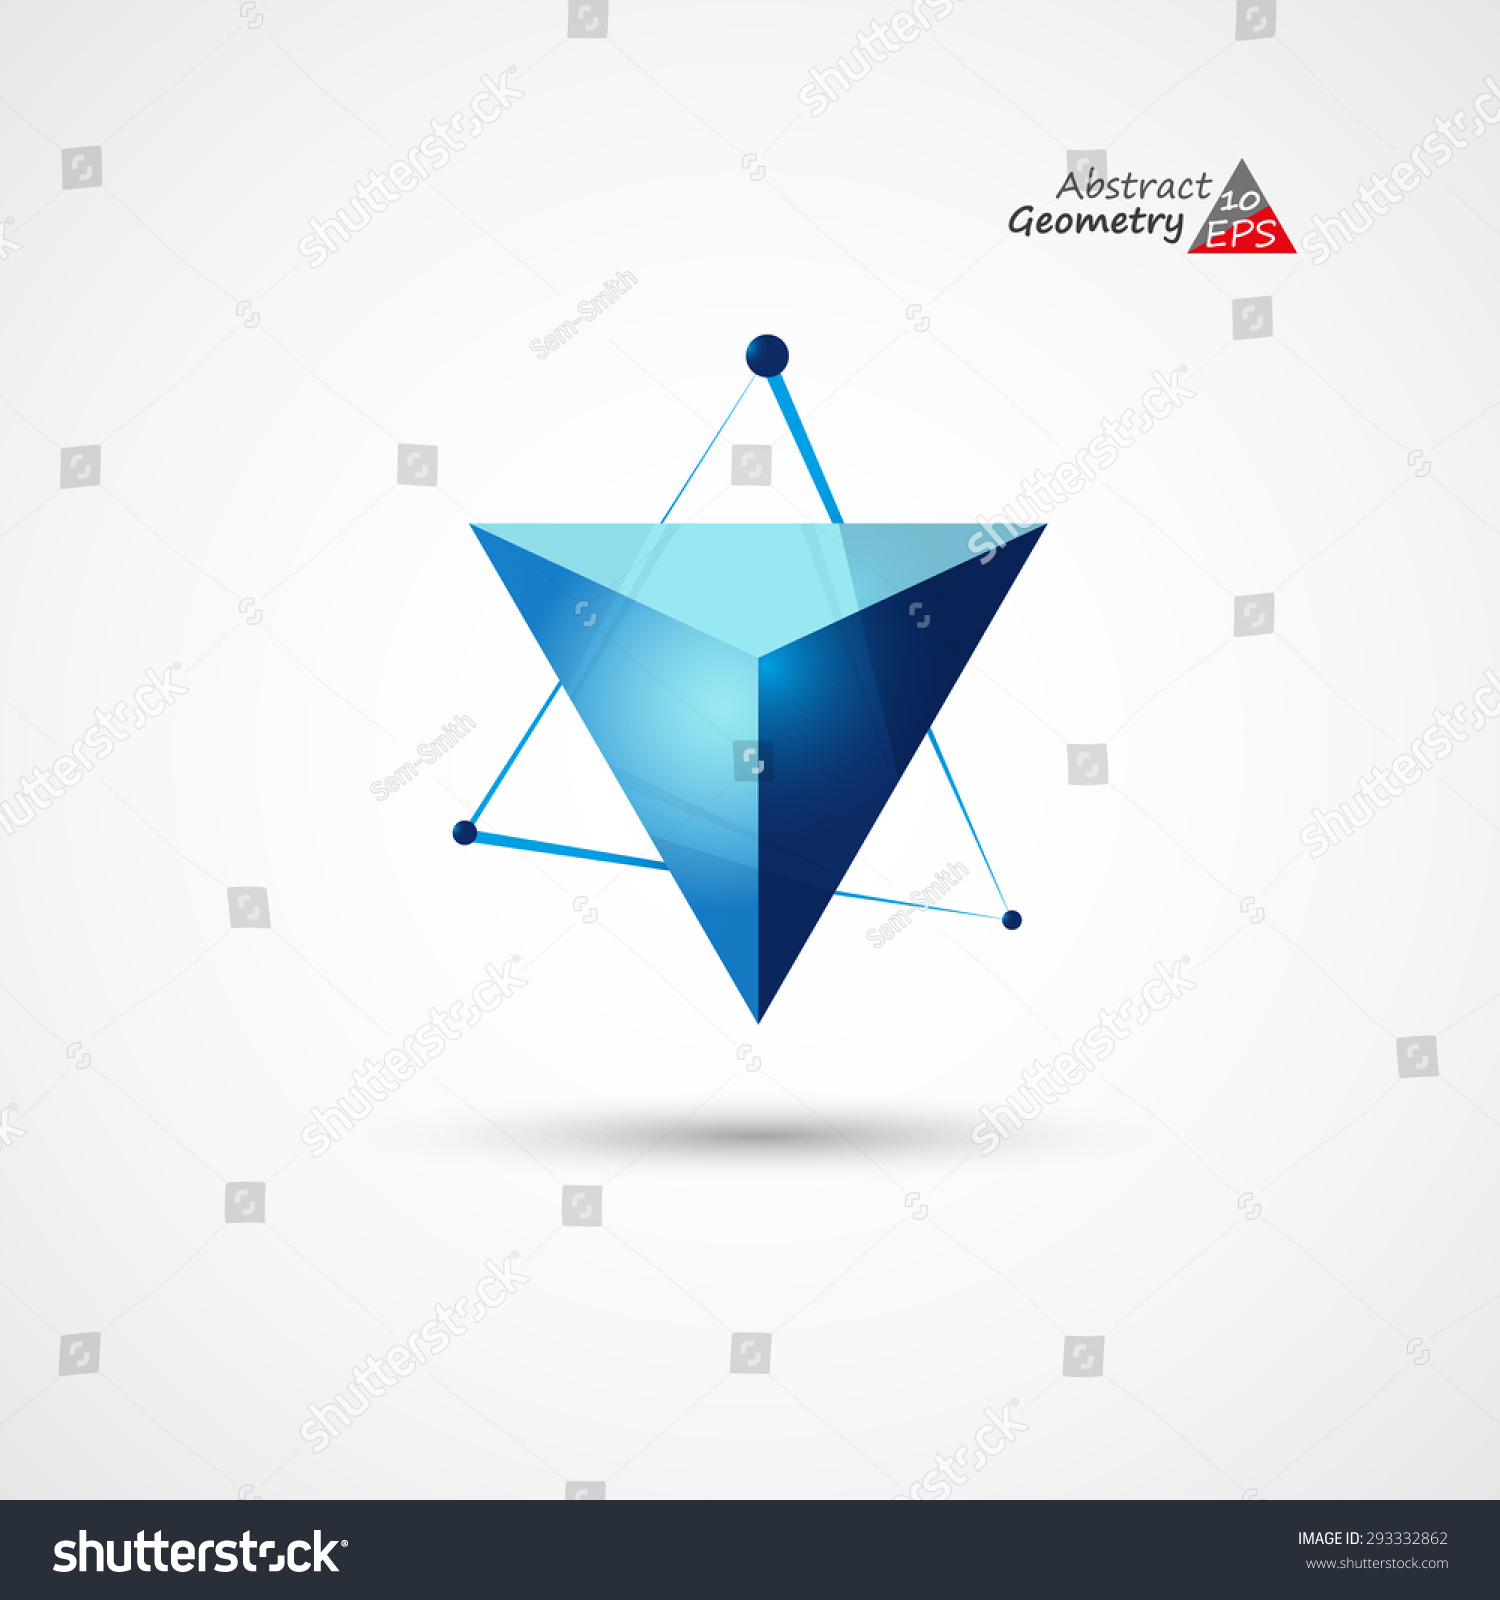 D background images - Abstract Logo Triangle 3 D Background Eps10 Vector Illustration